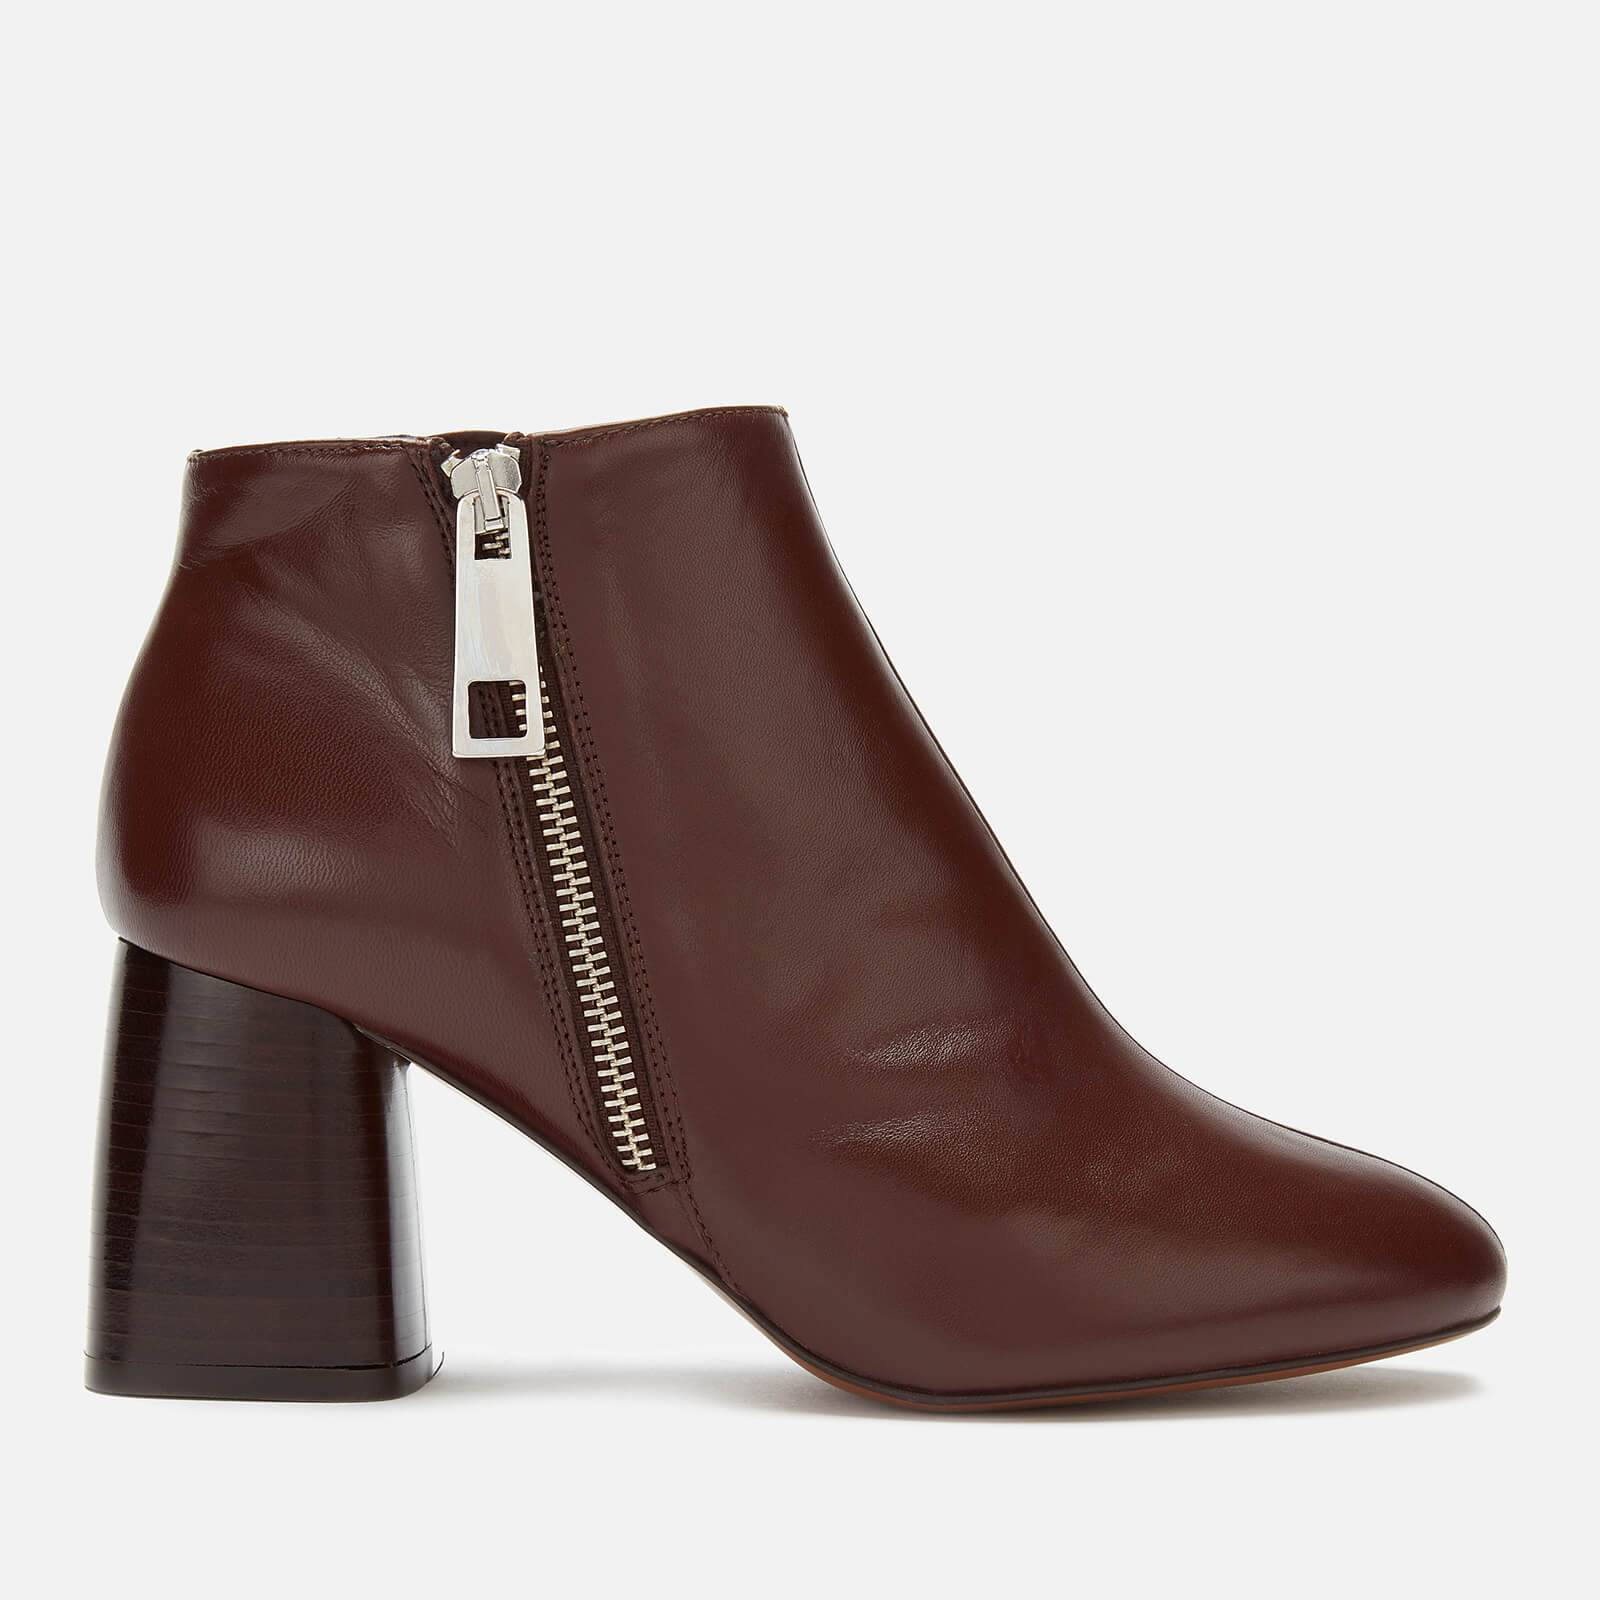 Whistles Women's Pippa Side Zip Boots - Brown - UK 8